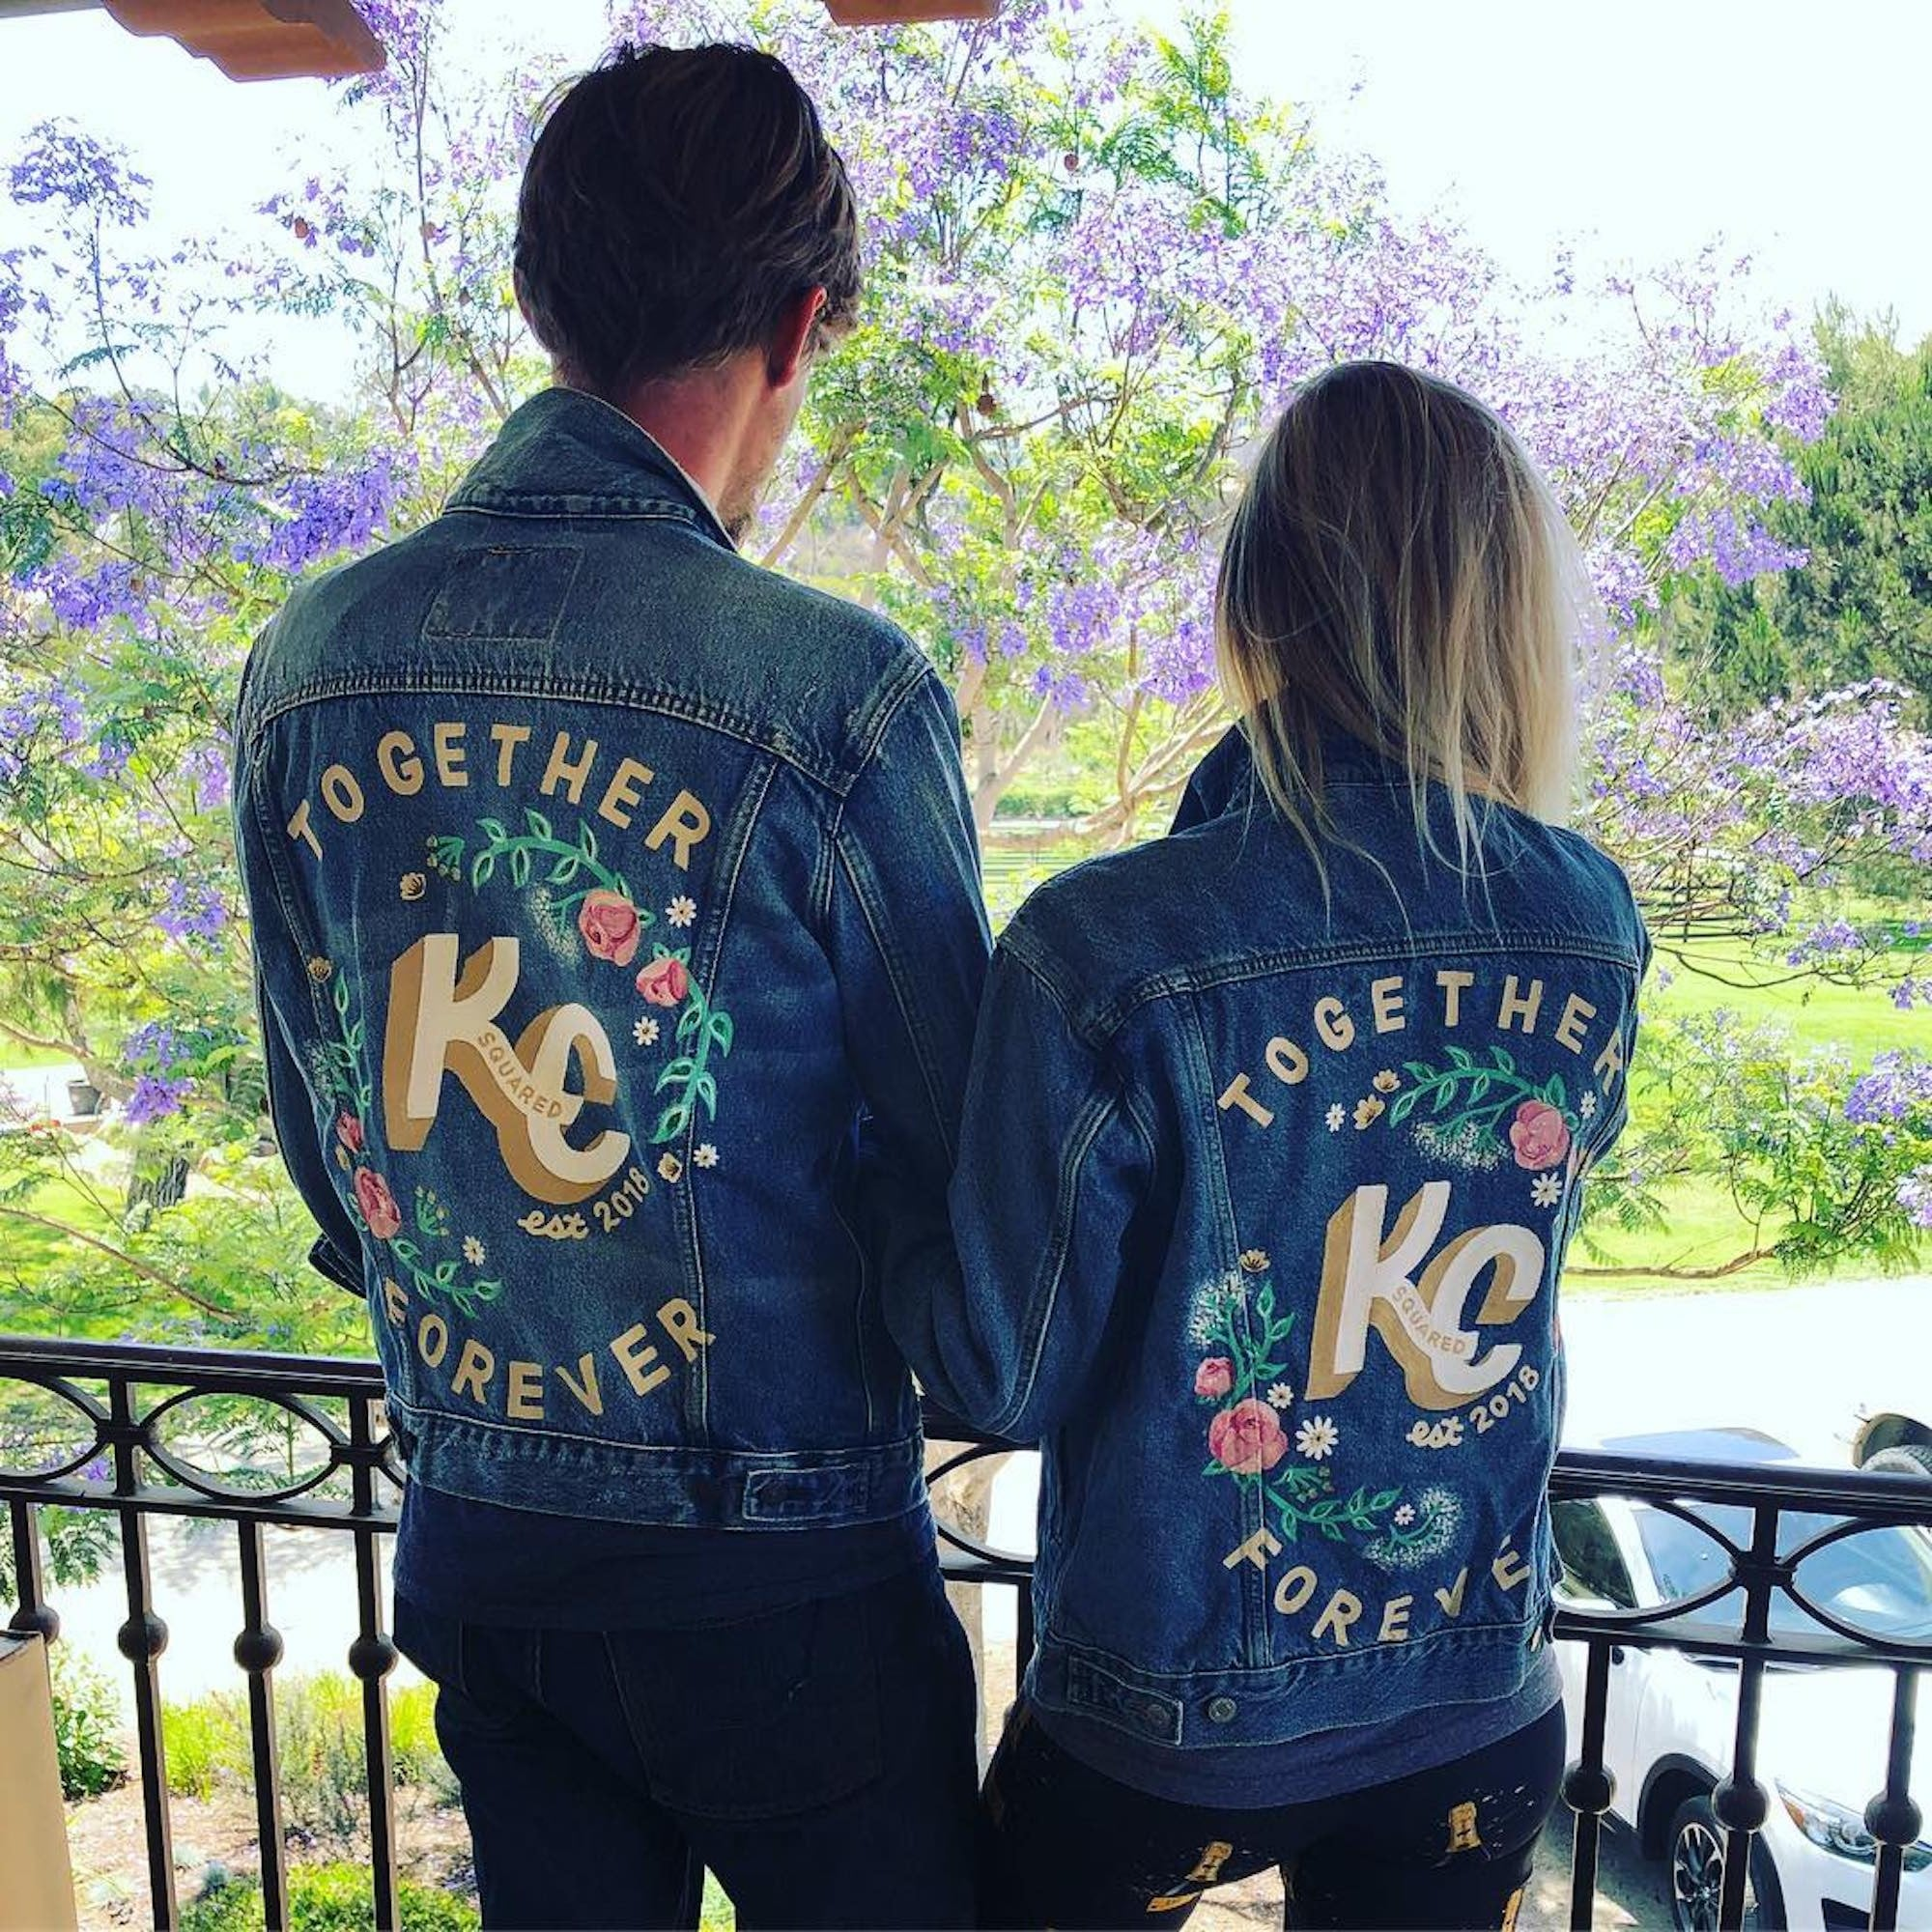 cbf07aa488 Kaley Cuoco and Karl Cook Denim Jackets on Wedding Day